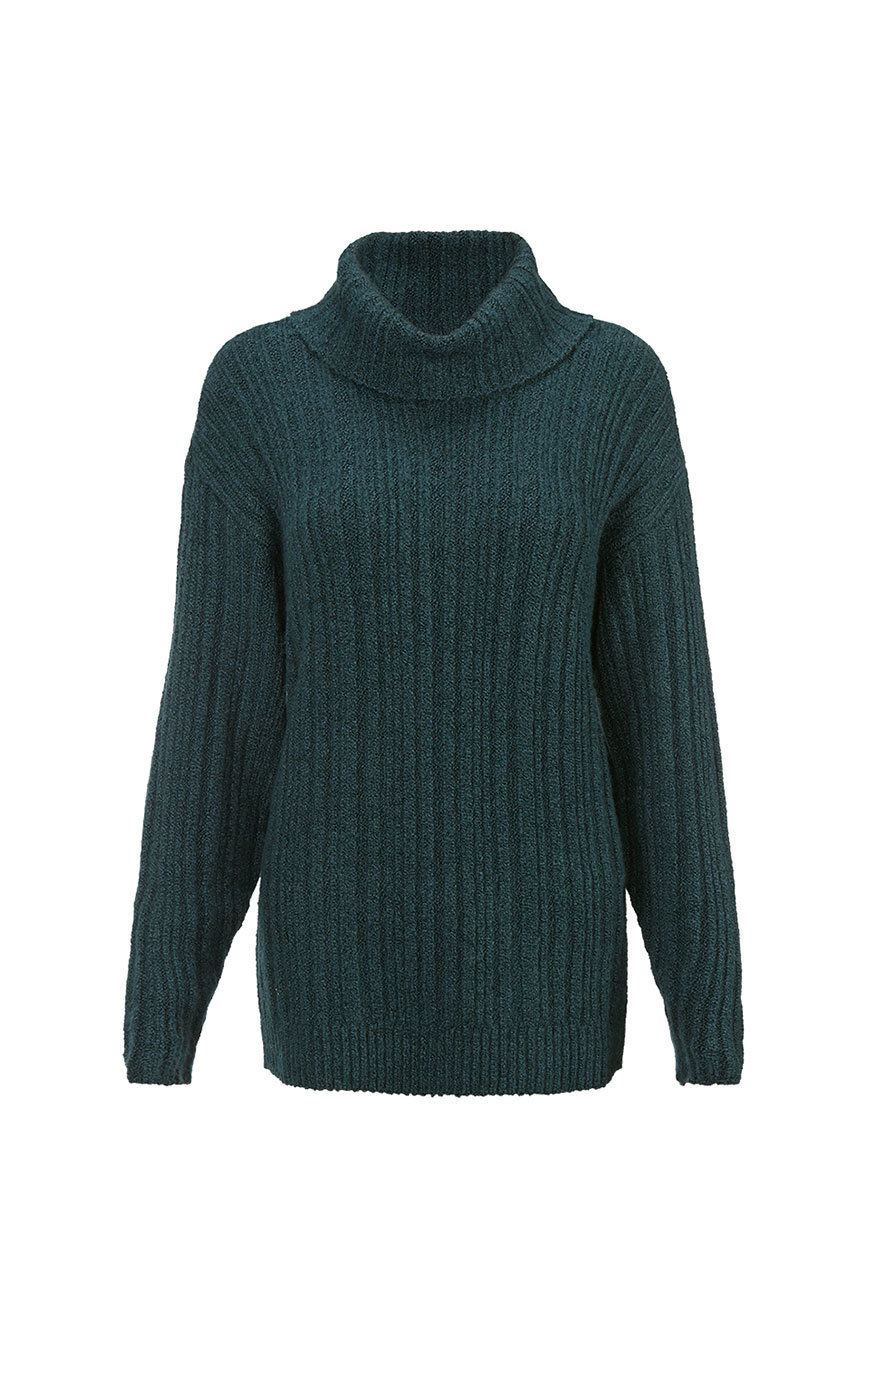 cabi's Tryst Pullover